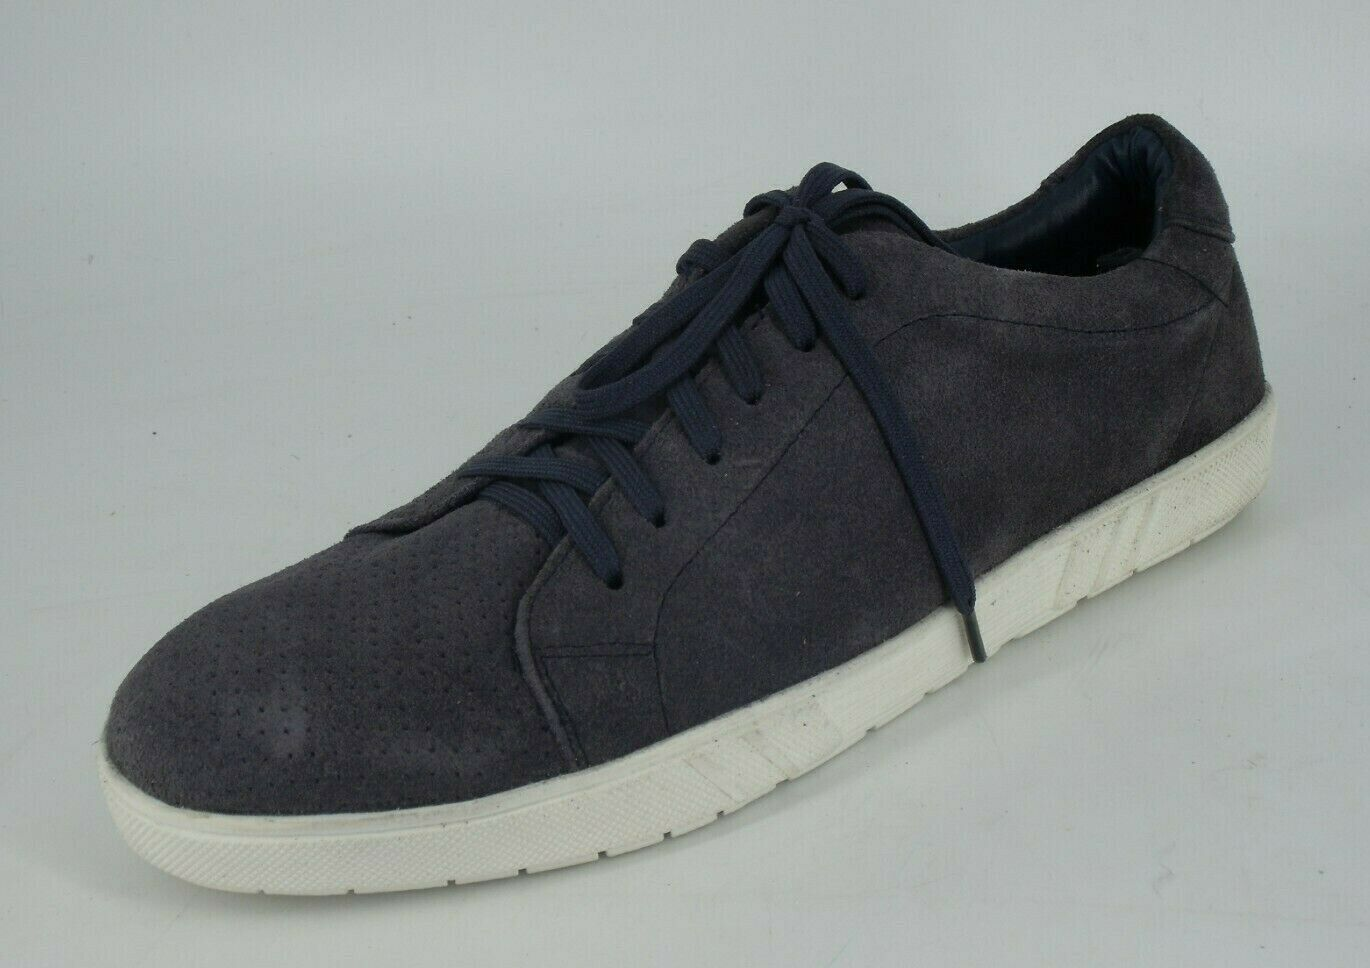 Cotton Traders Men's Suede Lace-up shoes bluee AQ11822 NH093 CC 05